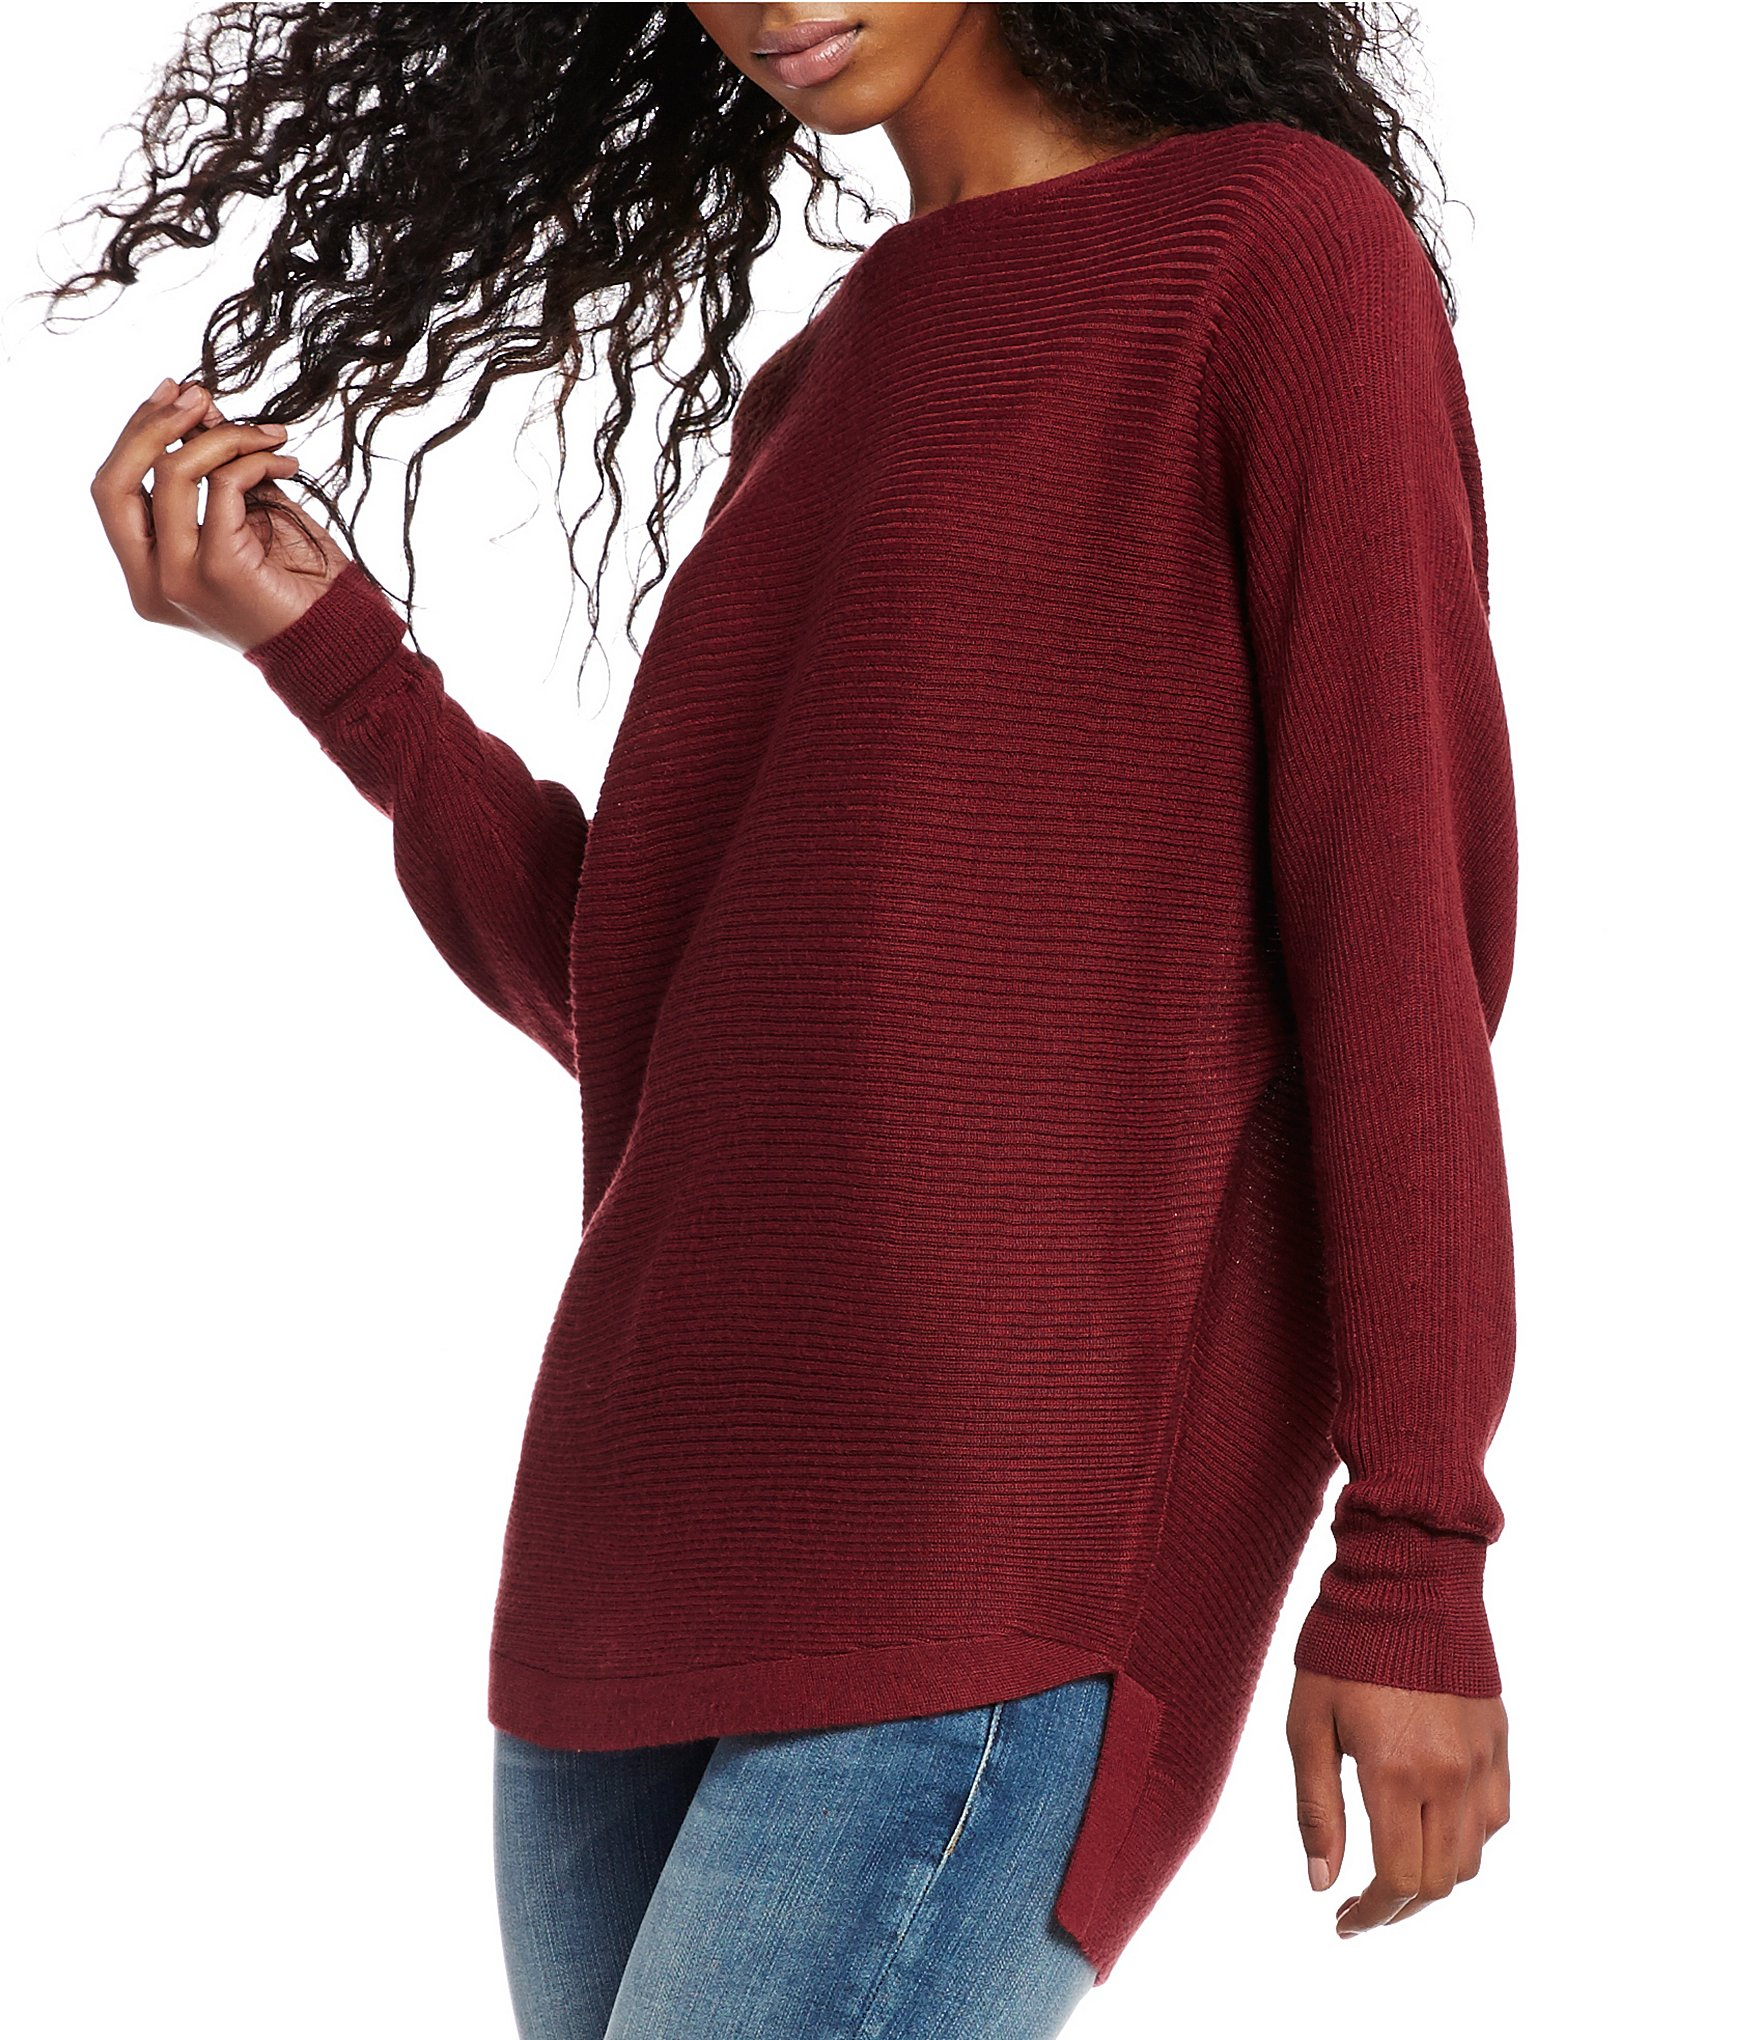 Chelsea and Violet Women's Sweaters, Shrugs & Cardigans | Dillards